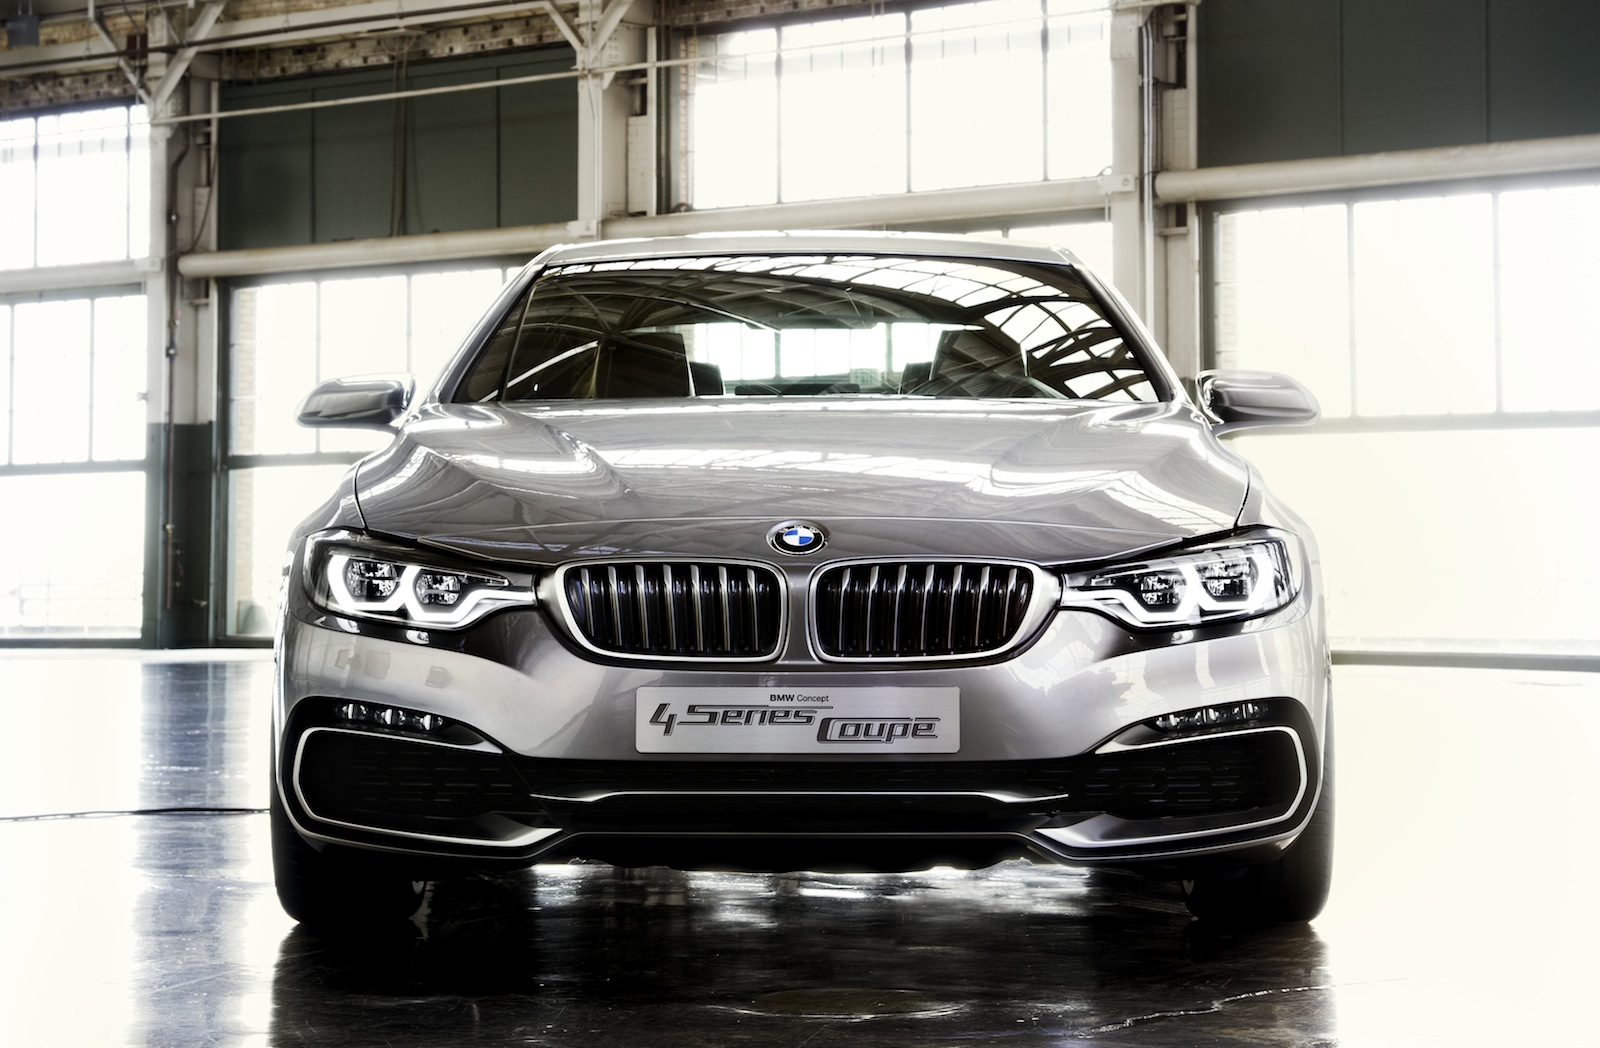 2019 BMW 4 Series Coupe Concept photo - 6